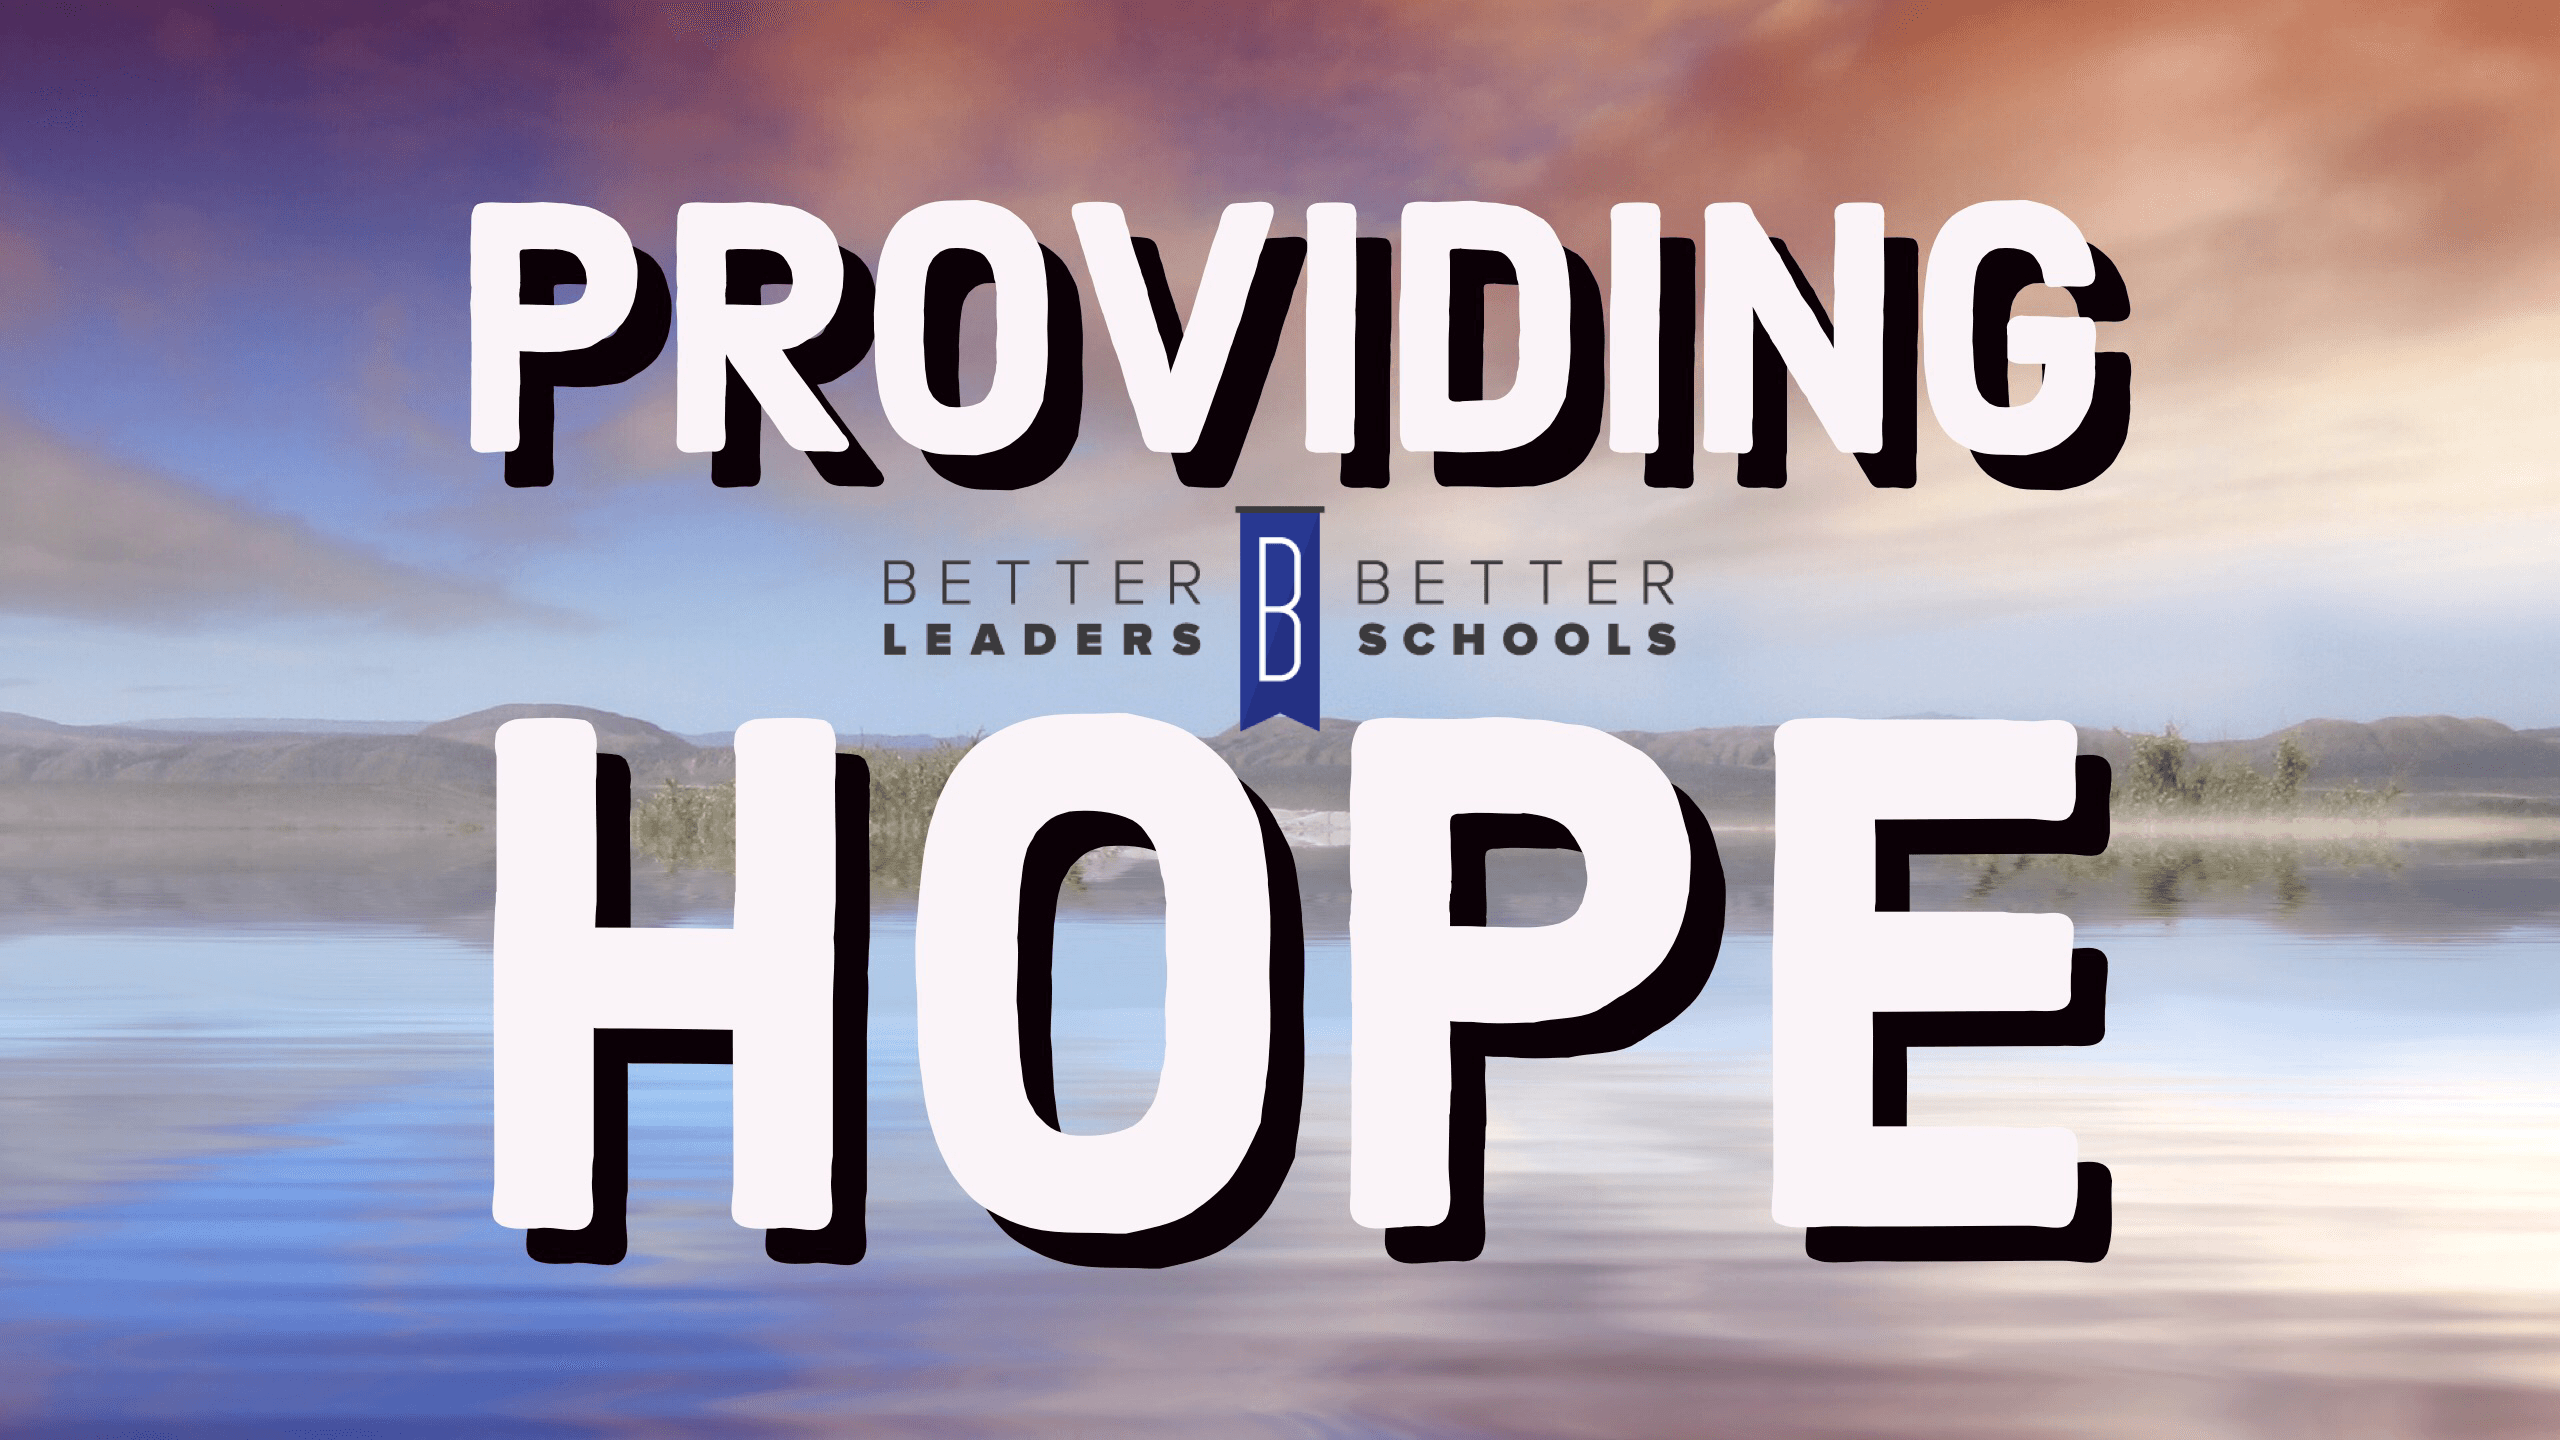 Bill Ziegler provides hope as a school leader